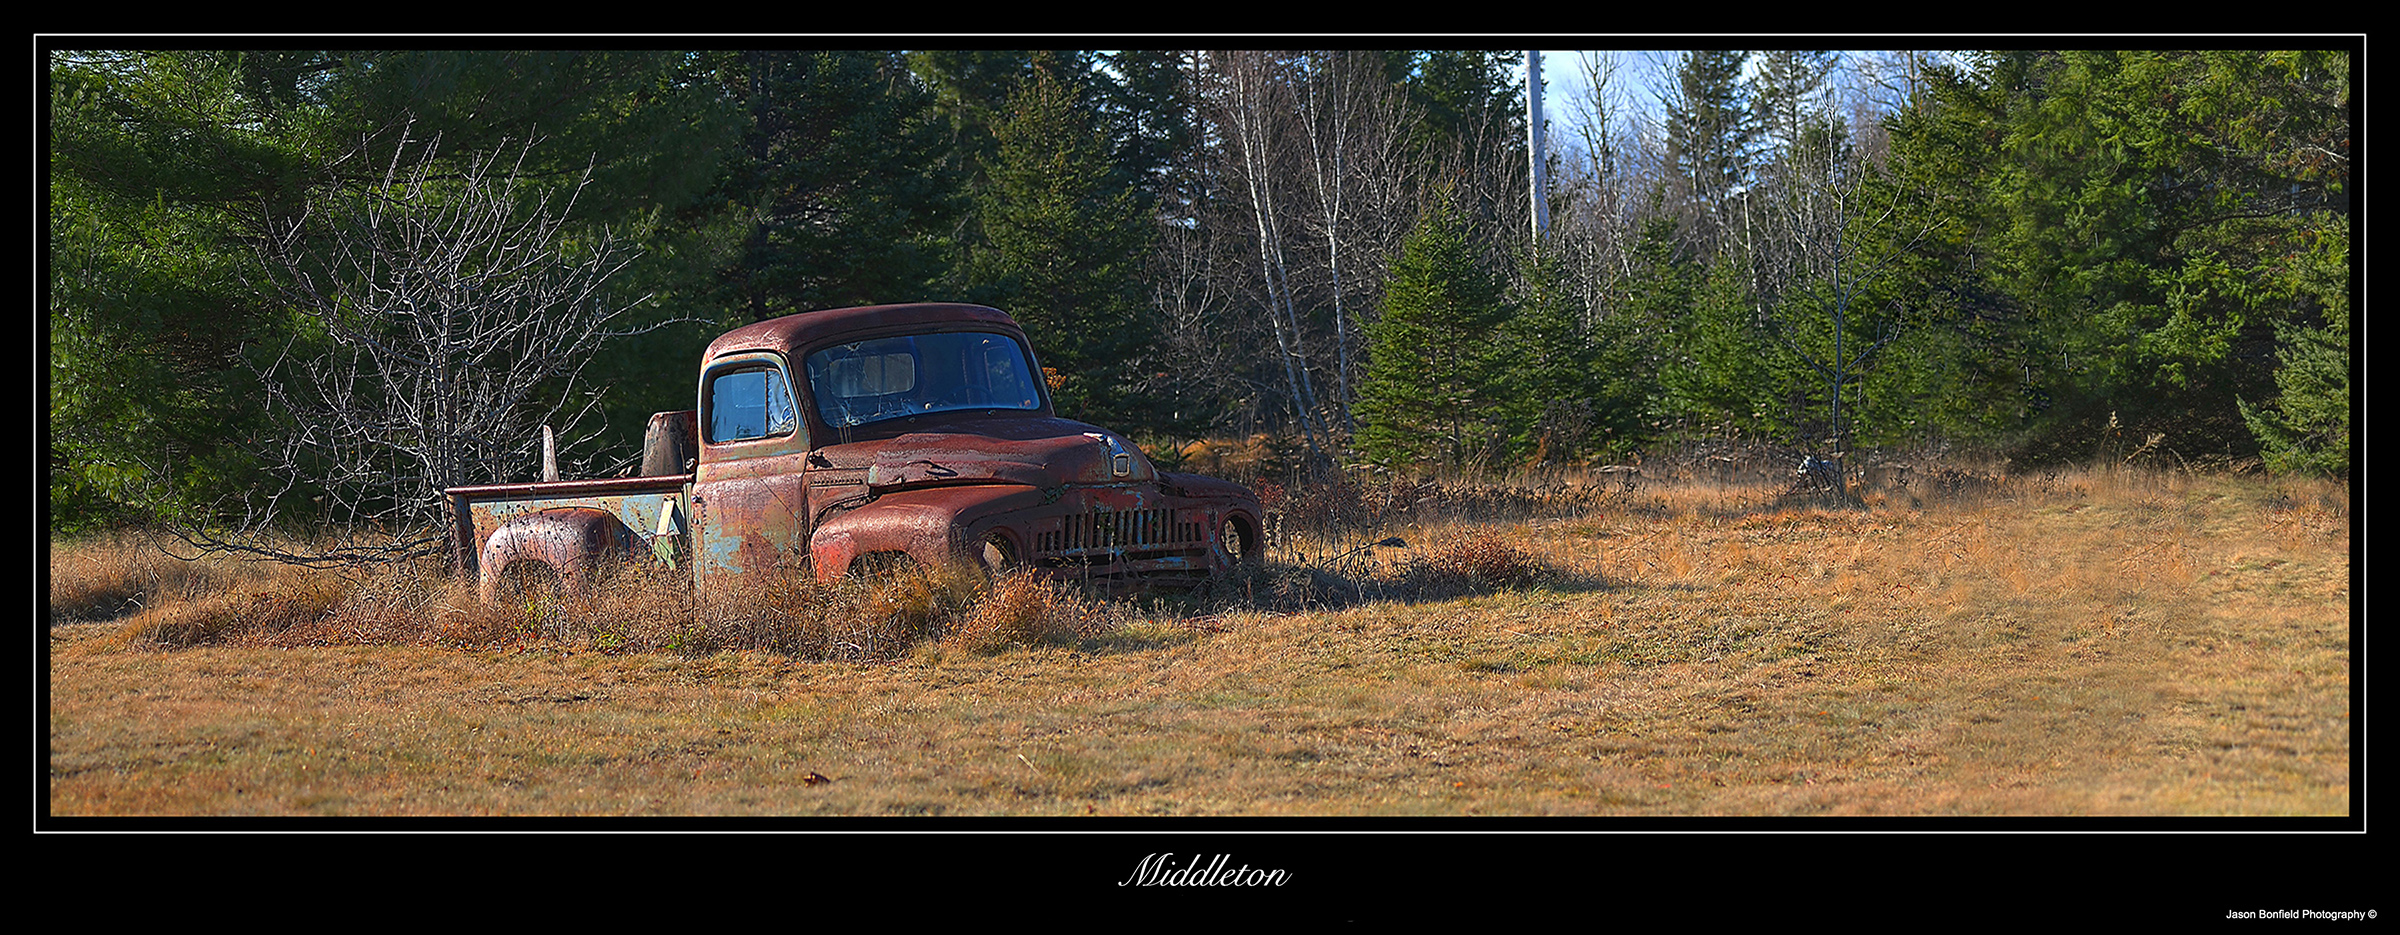 Panoramic landscape picture of an old abandoned sidestep pick-up truck, Middleton, Nova Scotia, Canada.